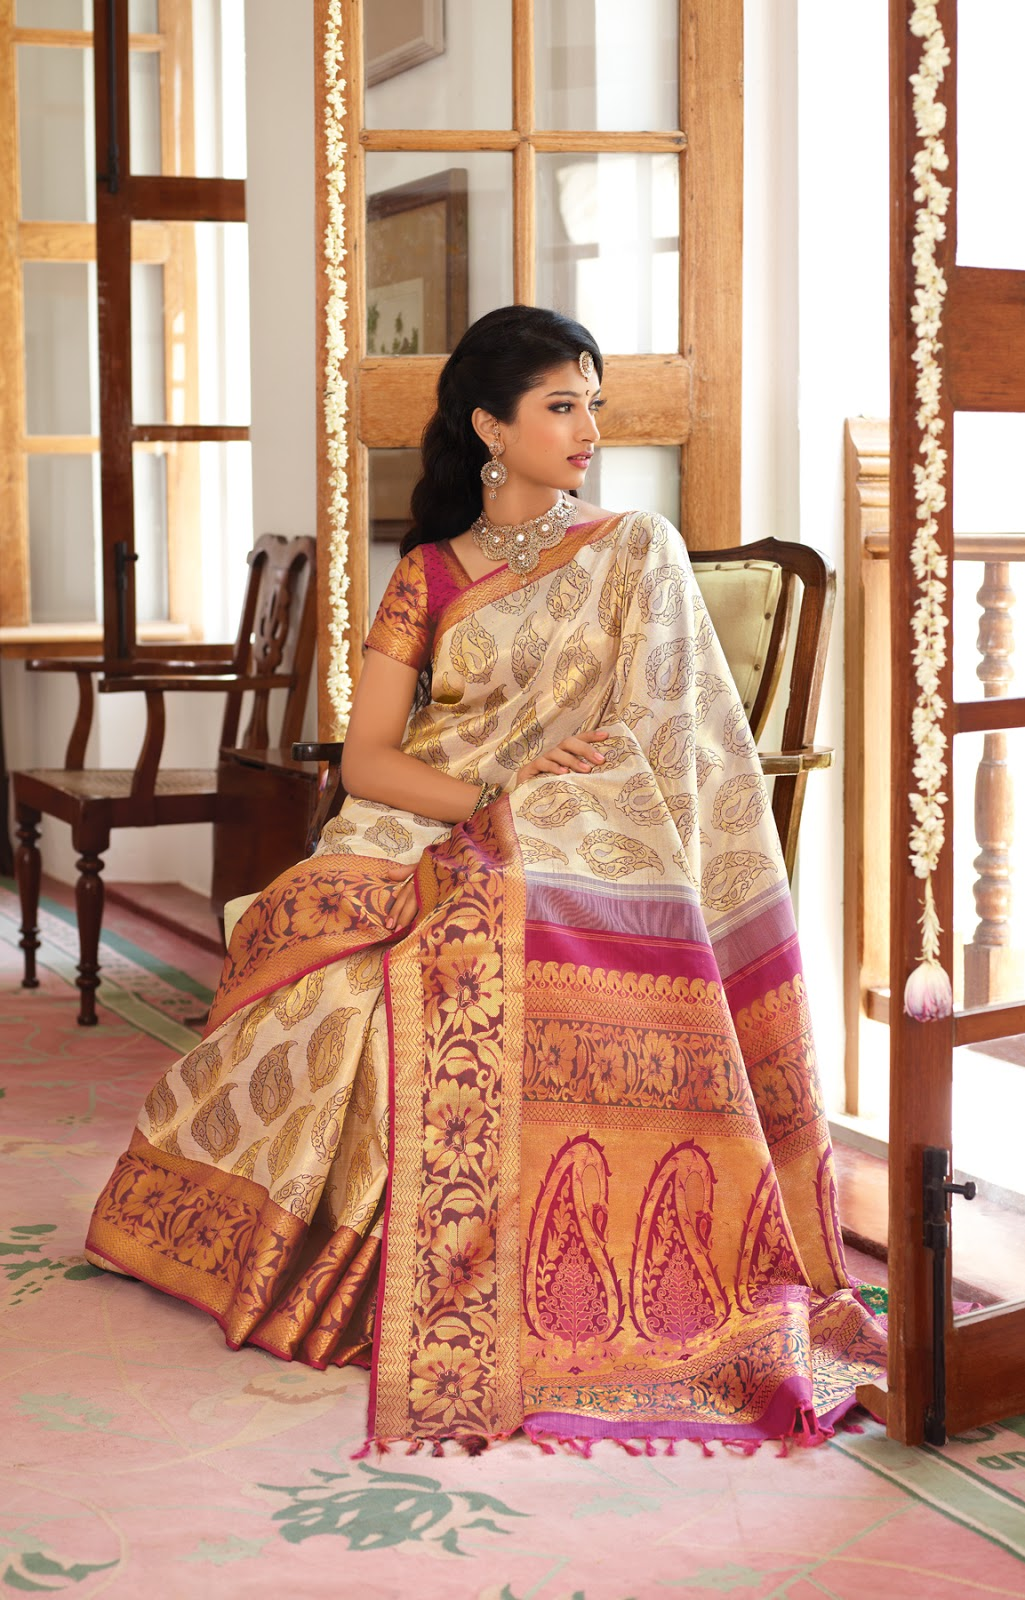 Wedding Lehengas  A Attire To Look Different On The Wedding Day & Reception